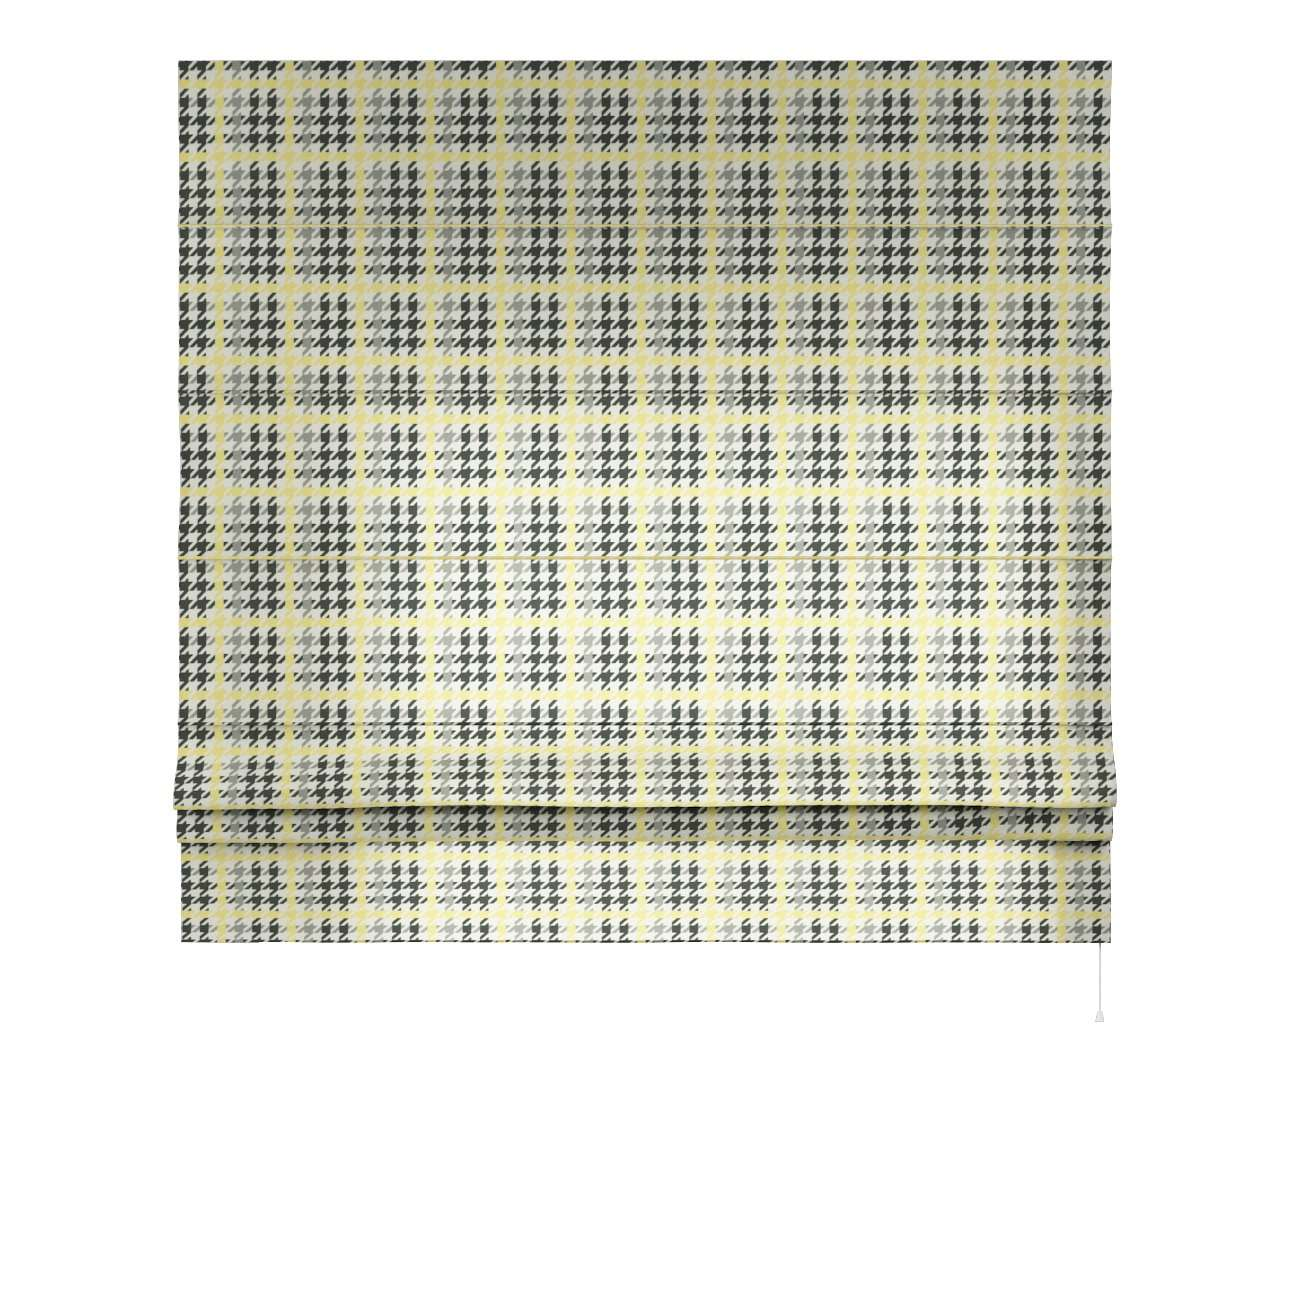 Padva roman blind  80 x 170 cm (31.5 x 67 inch) in collection Brooklyn, fabric: 137-79